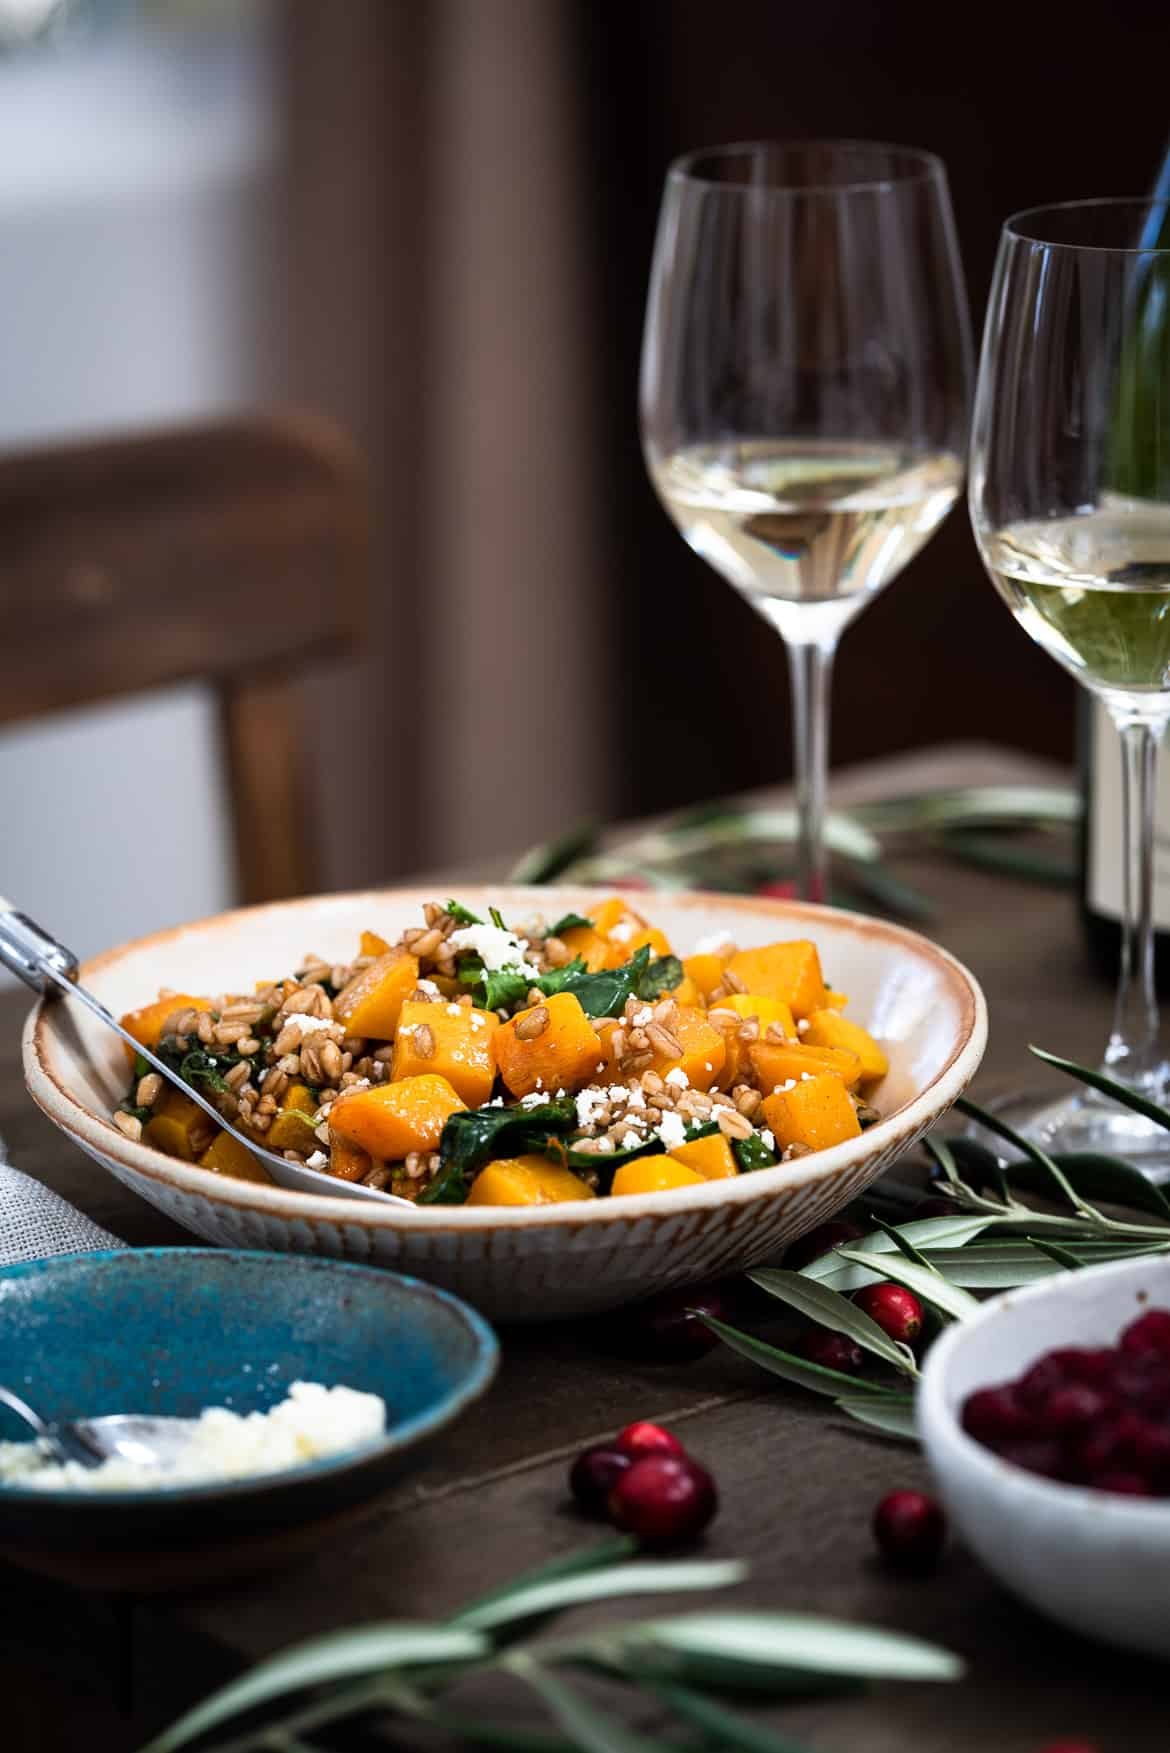 Roasted Butternut Squash Winter Salad in a white bowl.